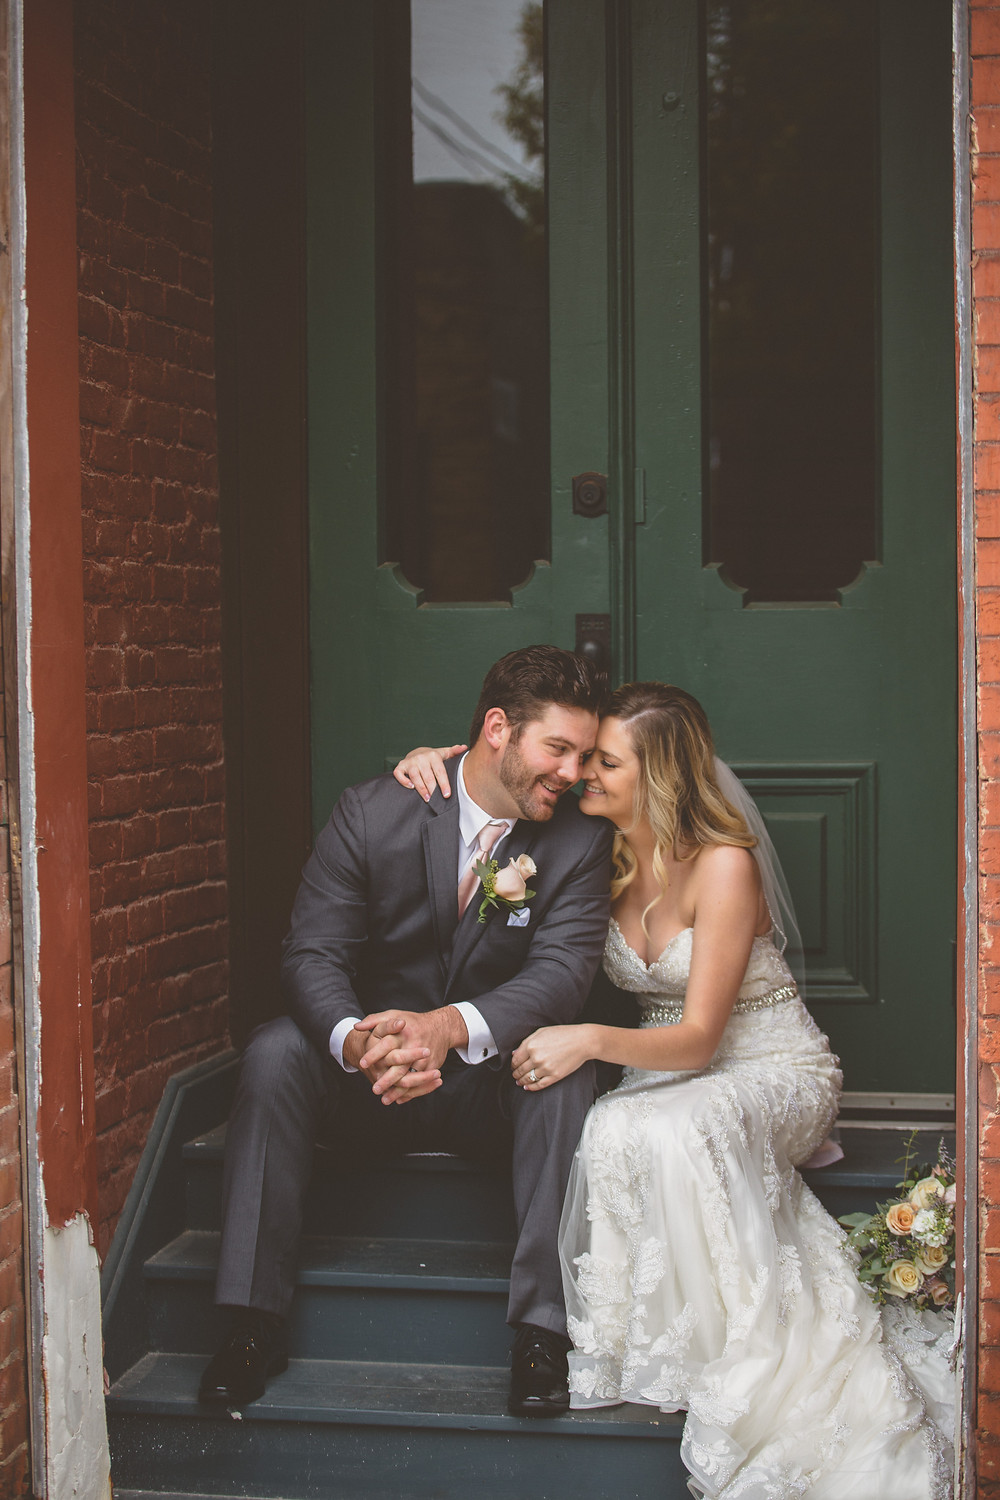 Bride and groom snuggle infront of green doors in downtown Des Moines.